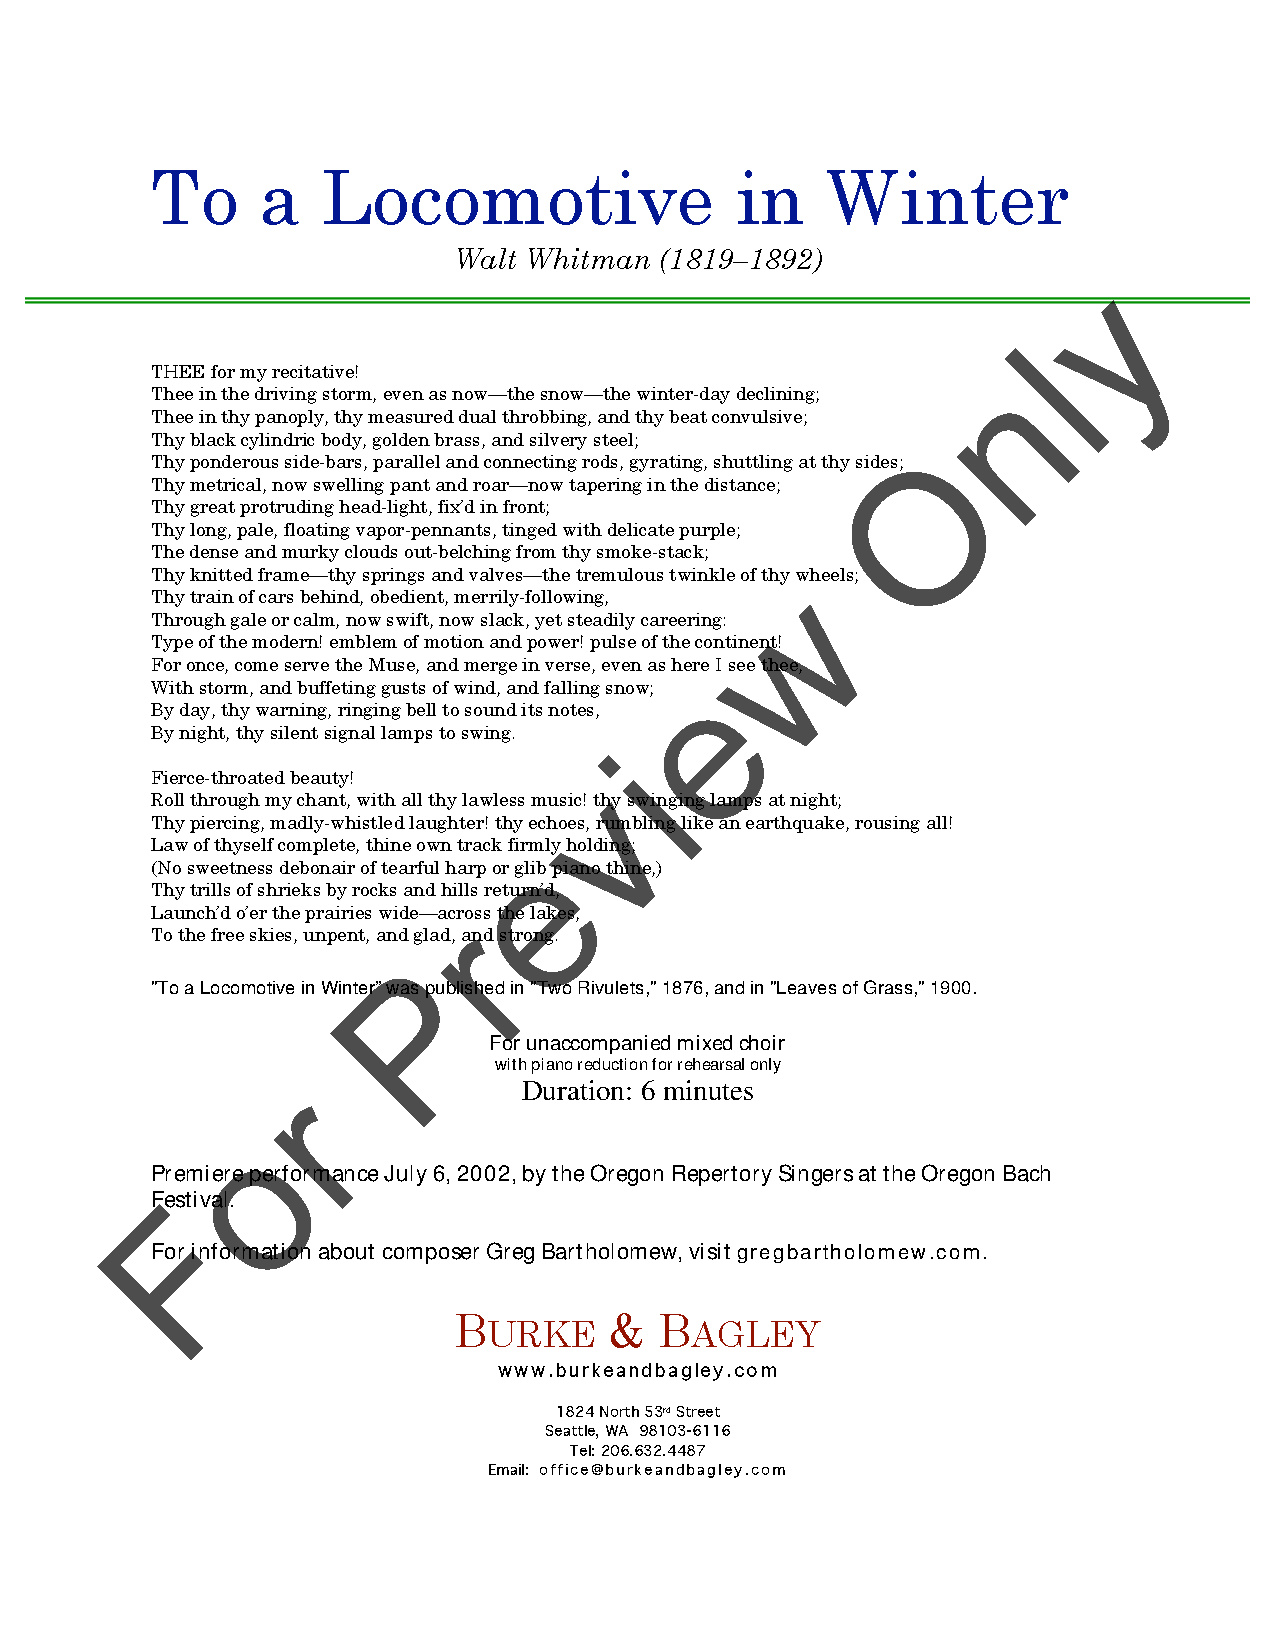 To a Locomotive in Winter Thumbnail